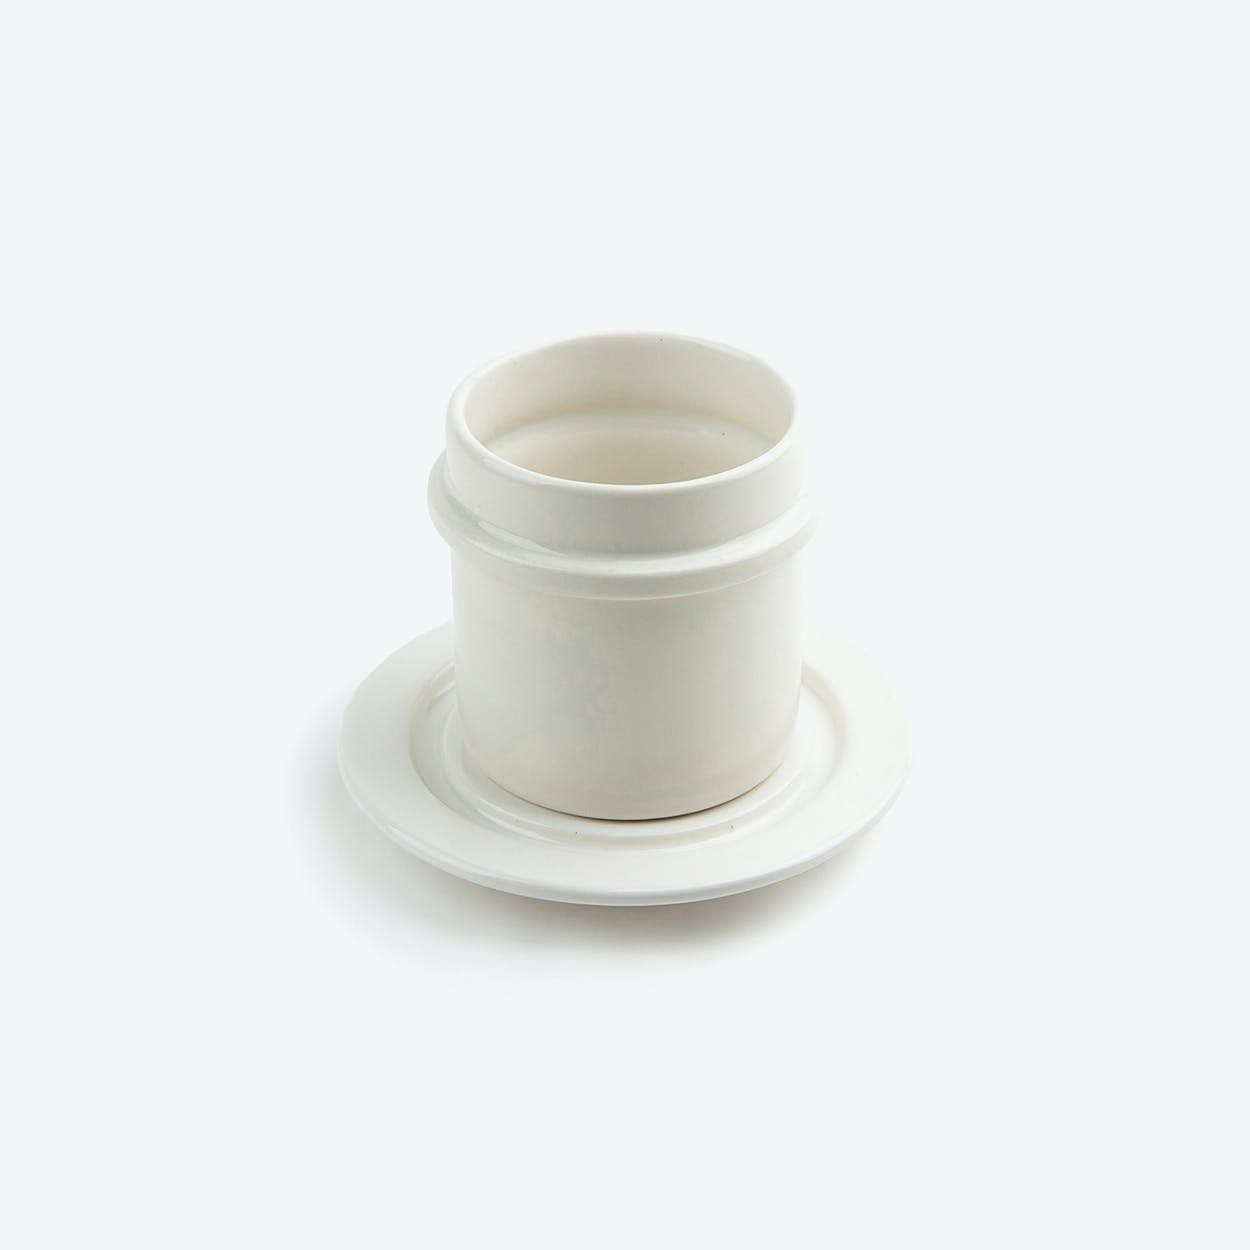 Cup & Saucer in White